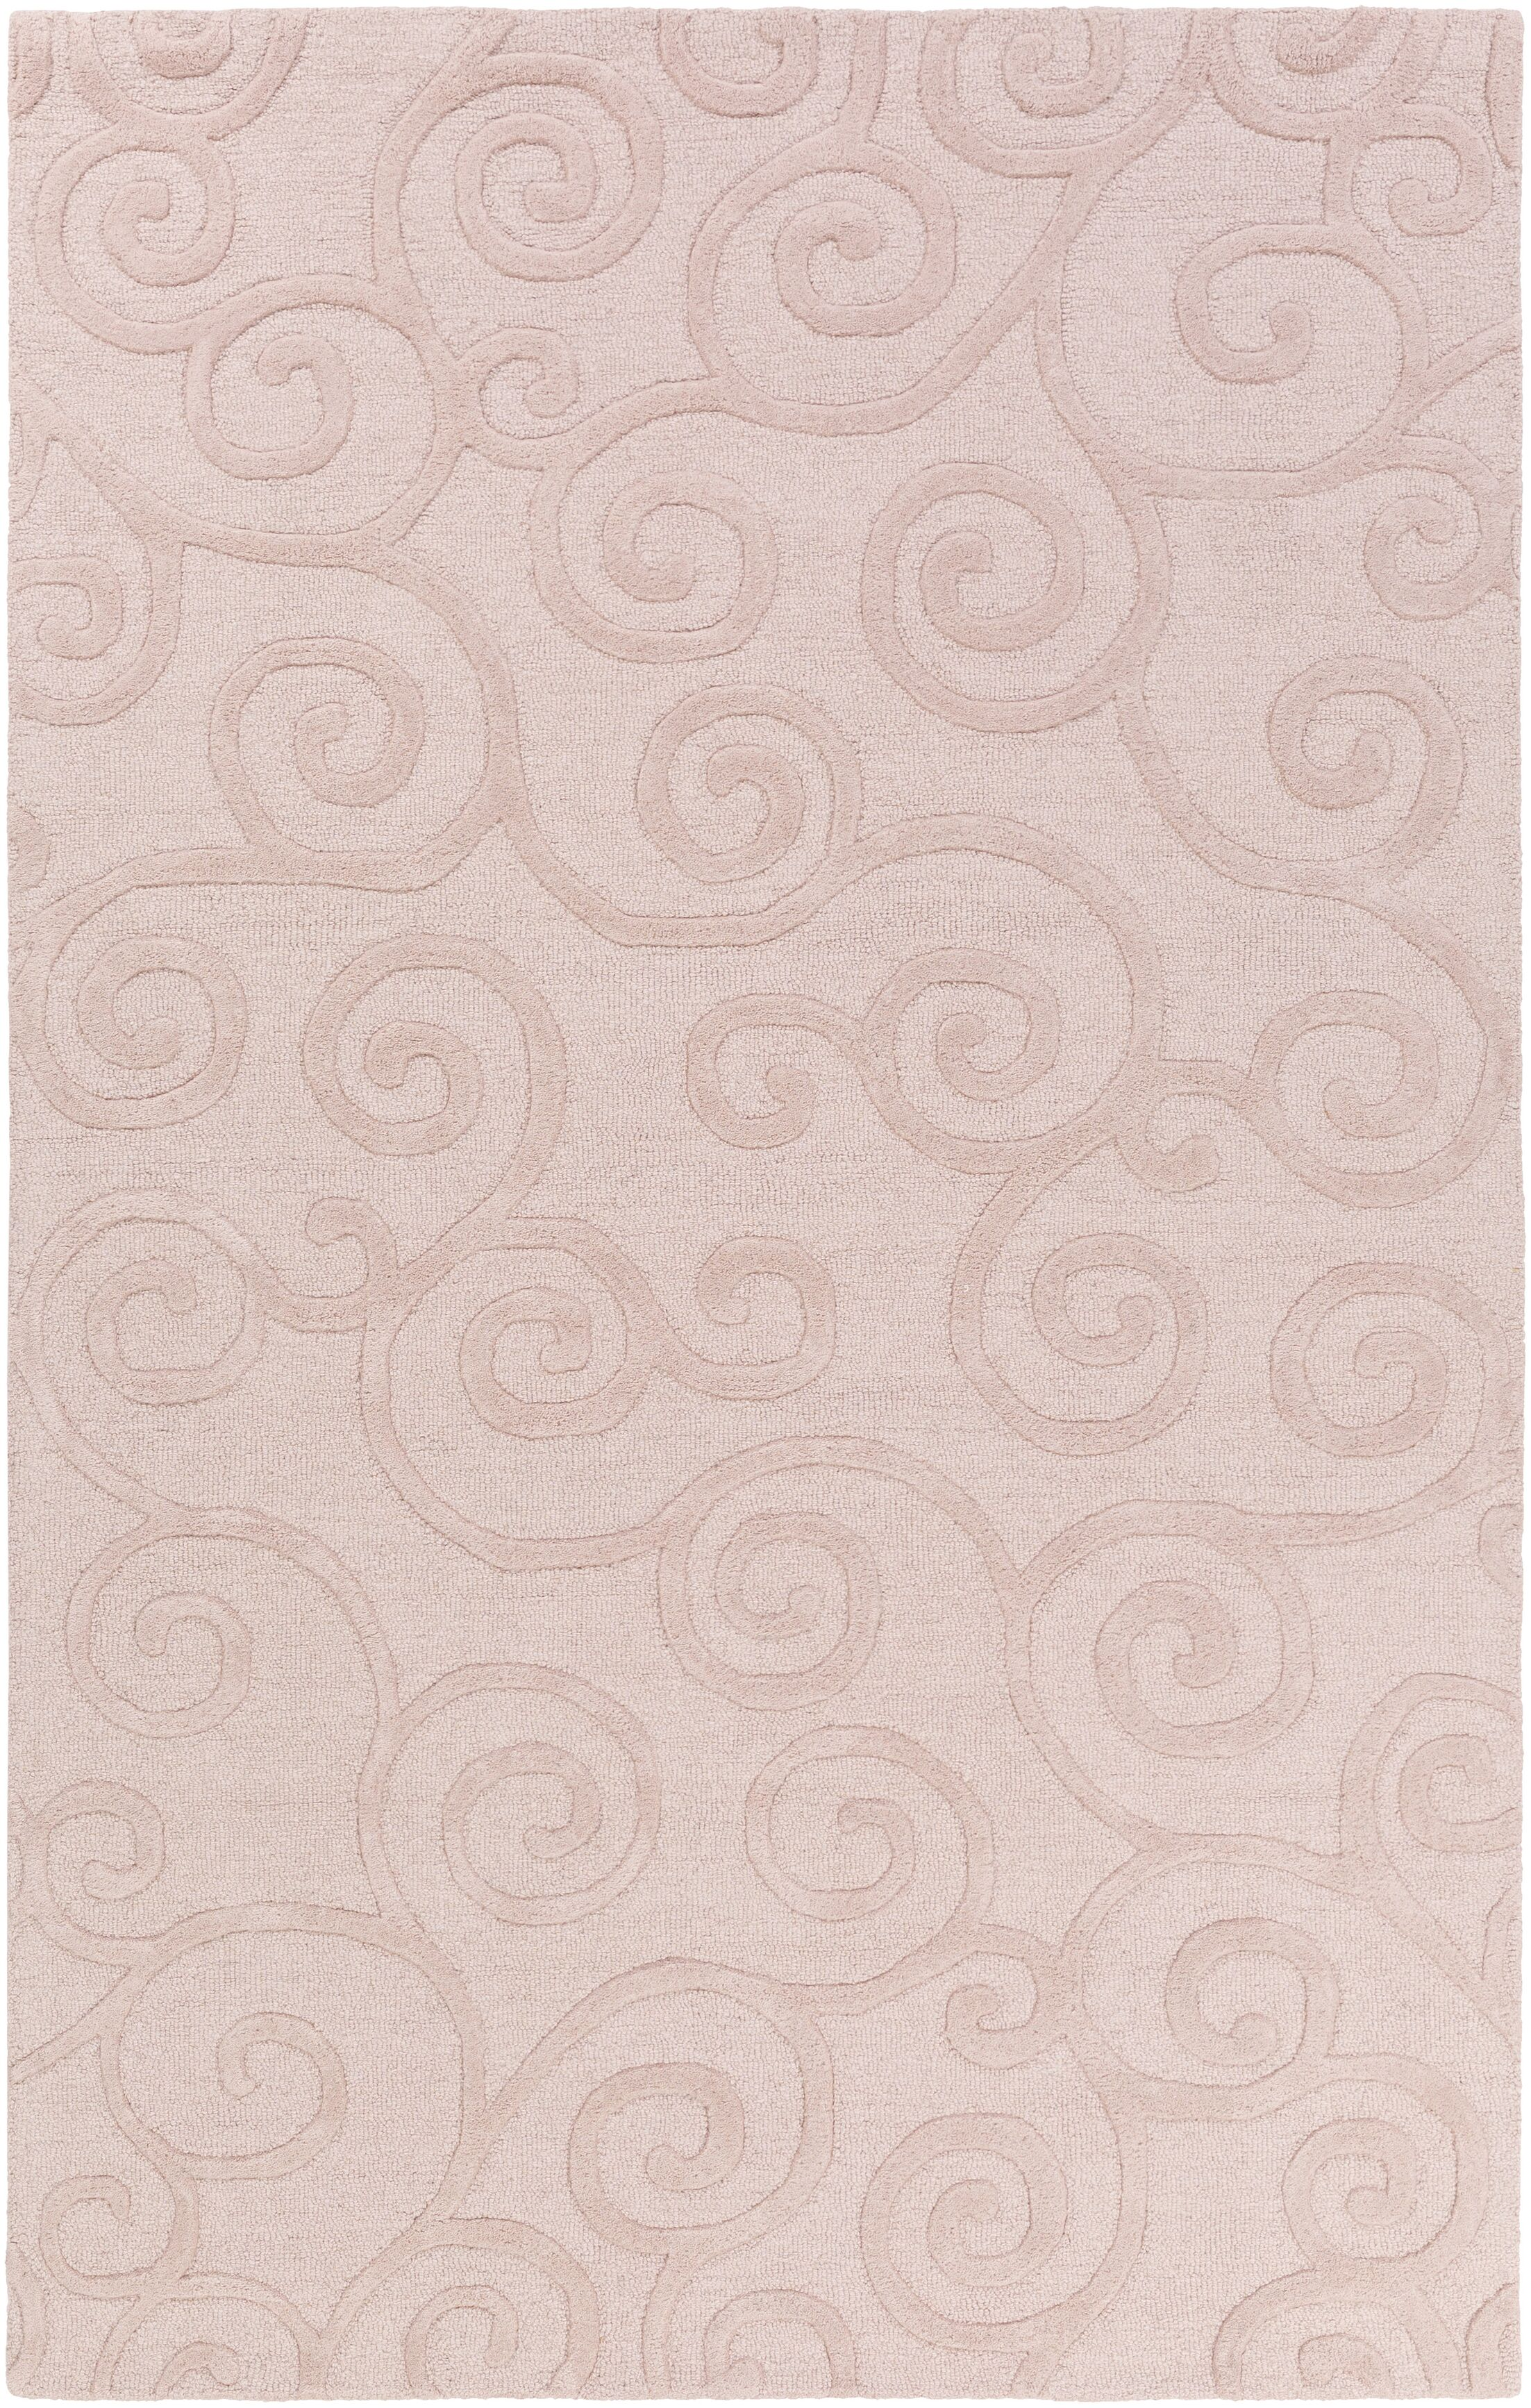 Allendale Hand-Tufted Light Pink Area Rug Rug Size: Rectangle 5' x 8'